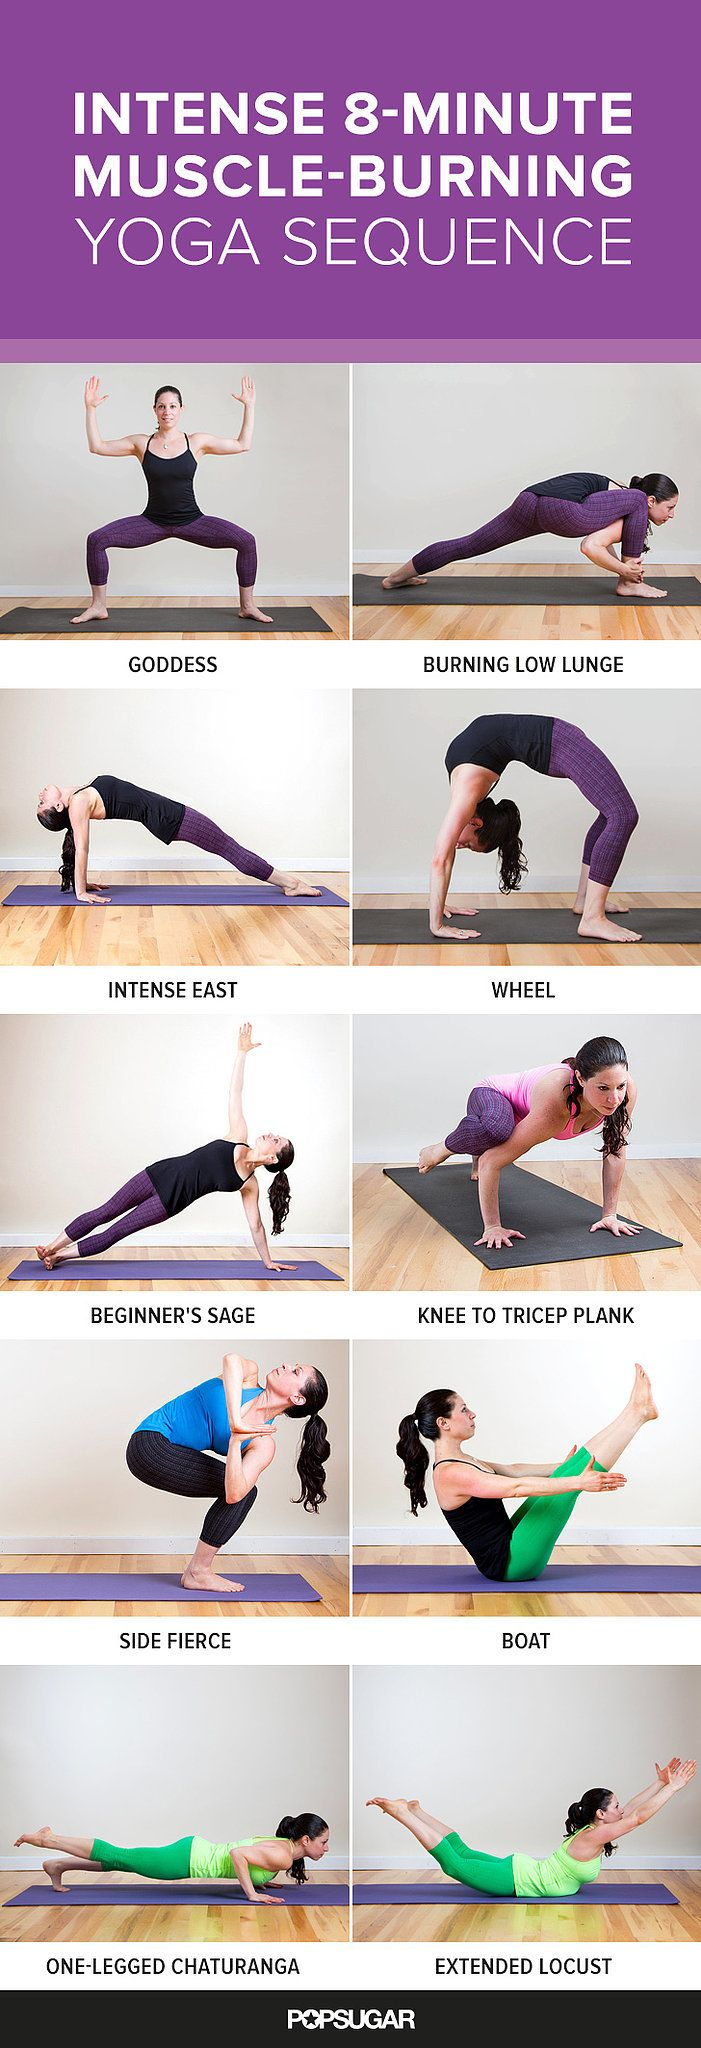 Get an Intense Burn With This 8-Minute Yoga Sequence